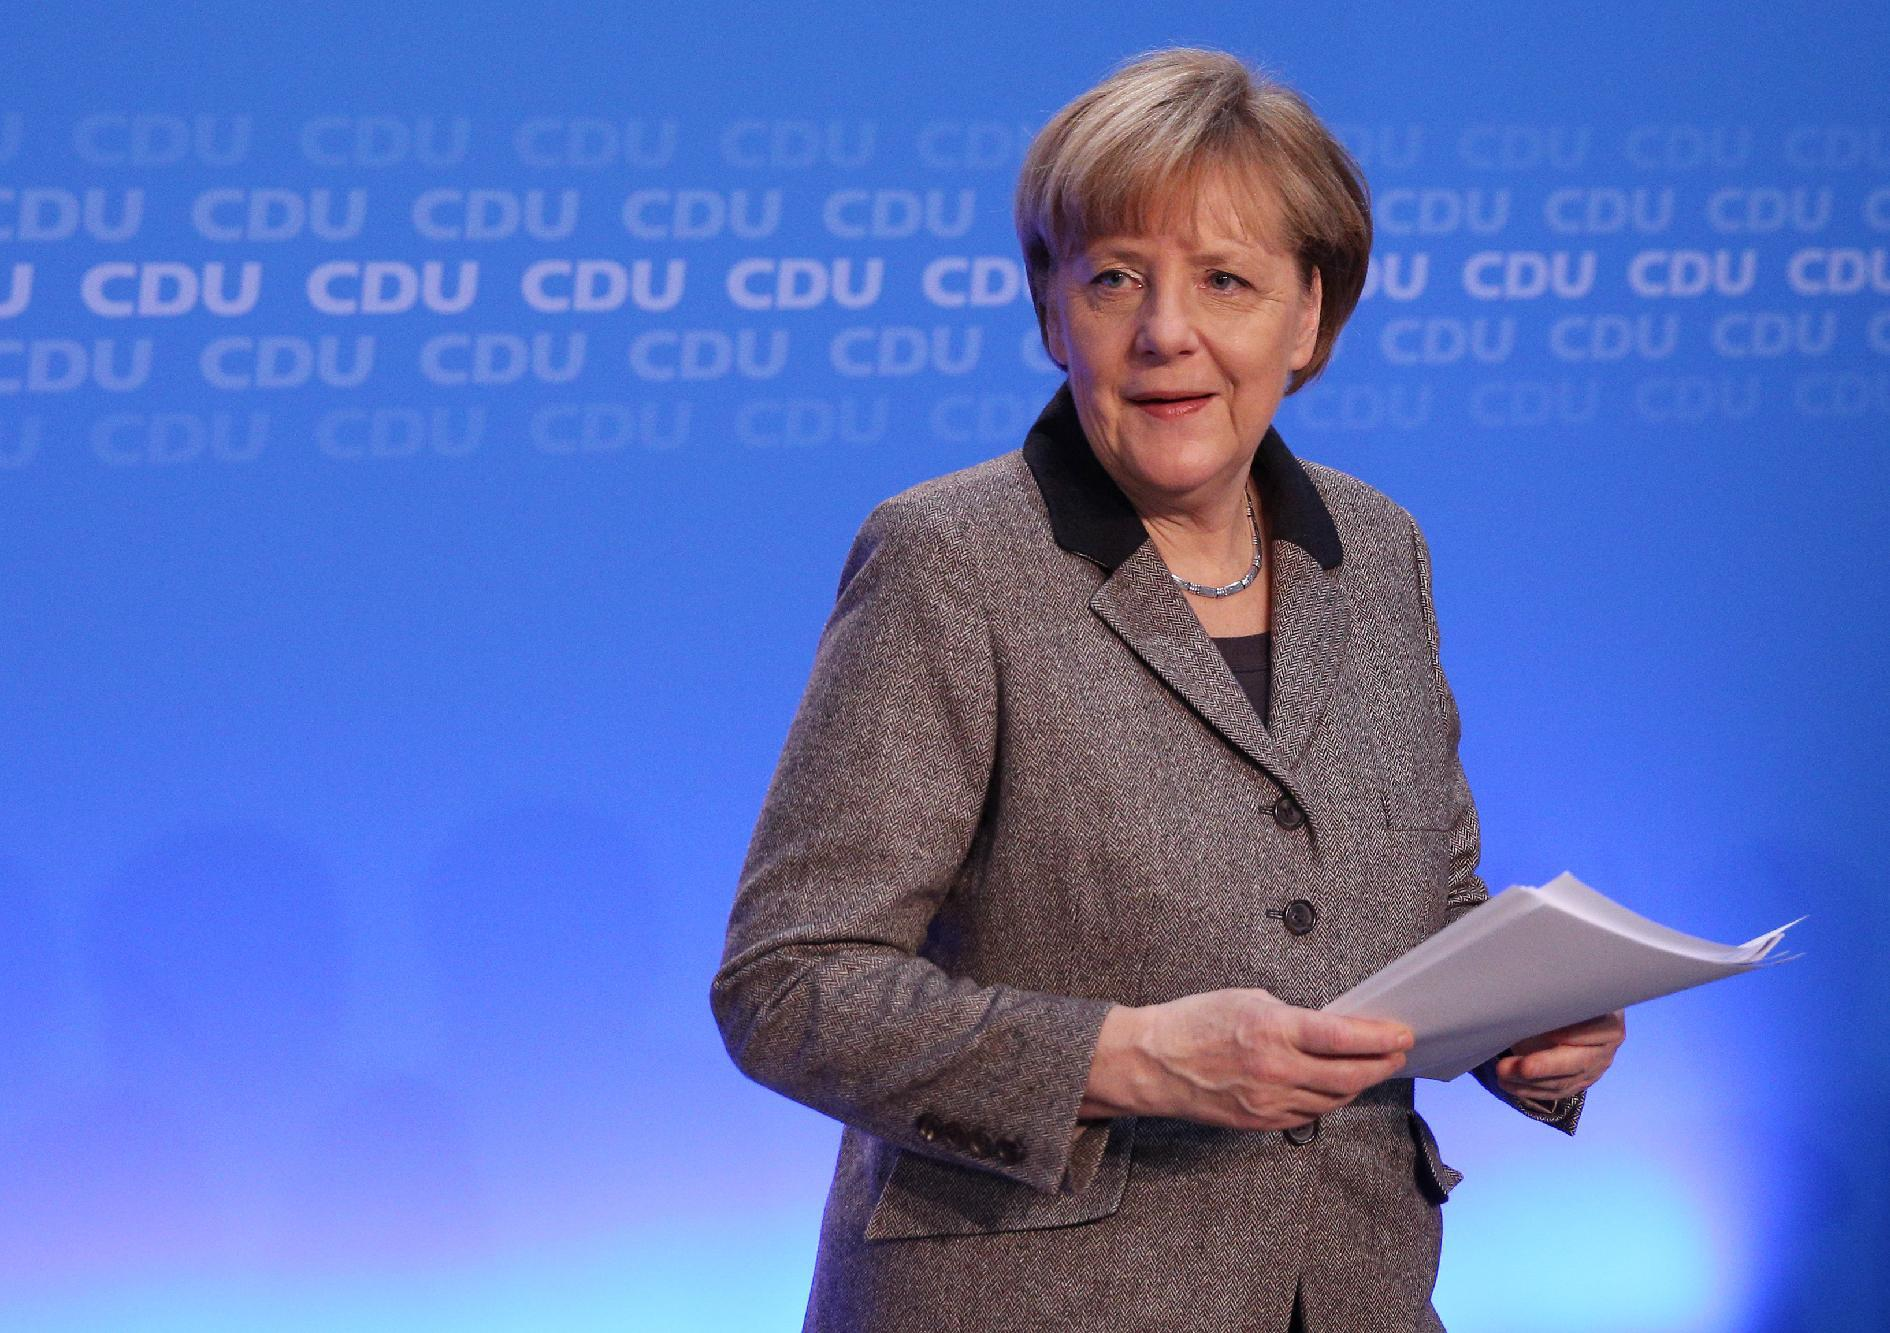 German Chancellor Angela Merkel attends a press conference after a conference with board members of her conservative Christian Democratic Union (CDU) party in Hamburg, northern Germany, on January 10, 2015